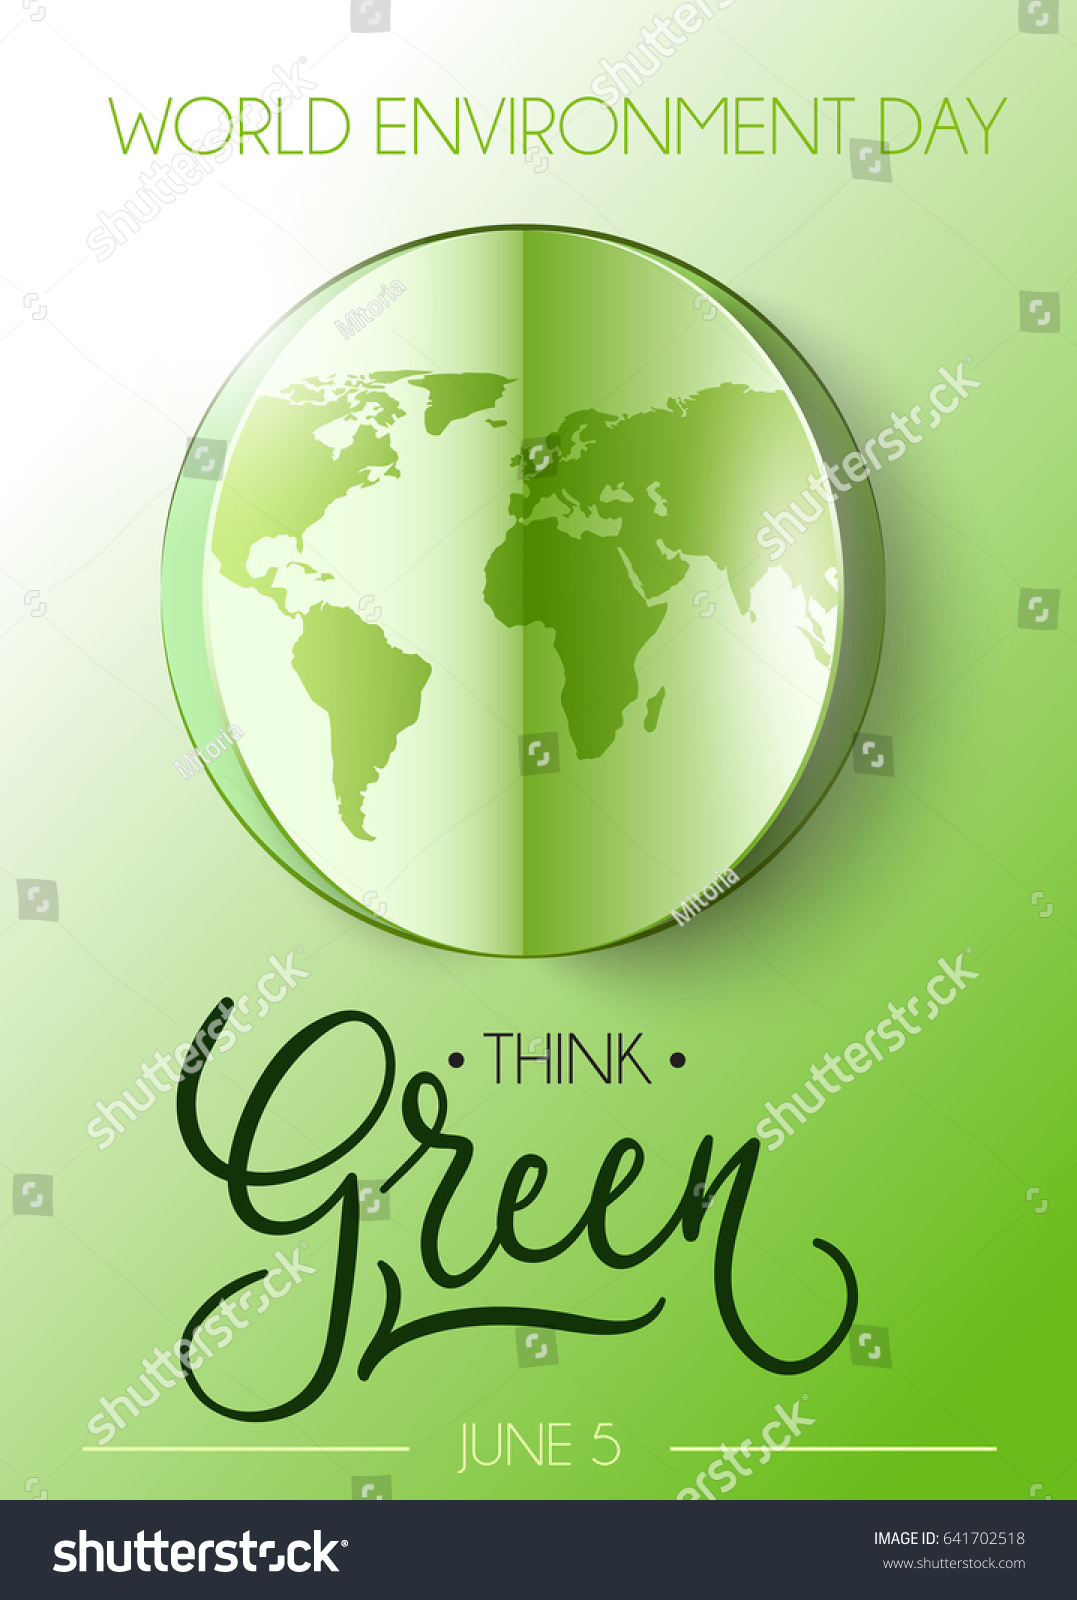 Poster design on environment - World Environment Day Poster With Modern Lettering Eco Friendly Vector Illustration With Realistic Cutout World